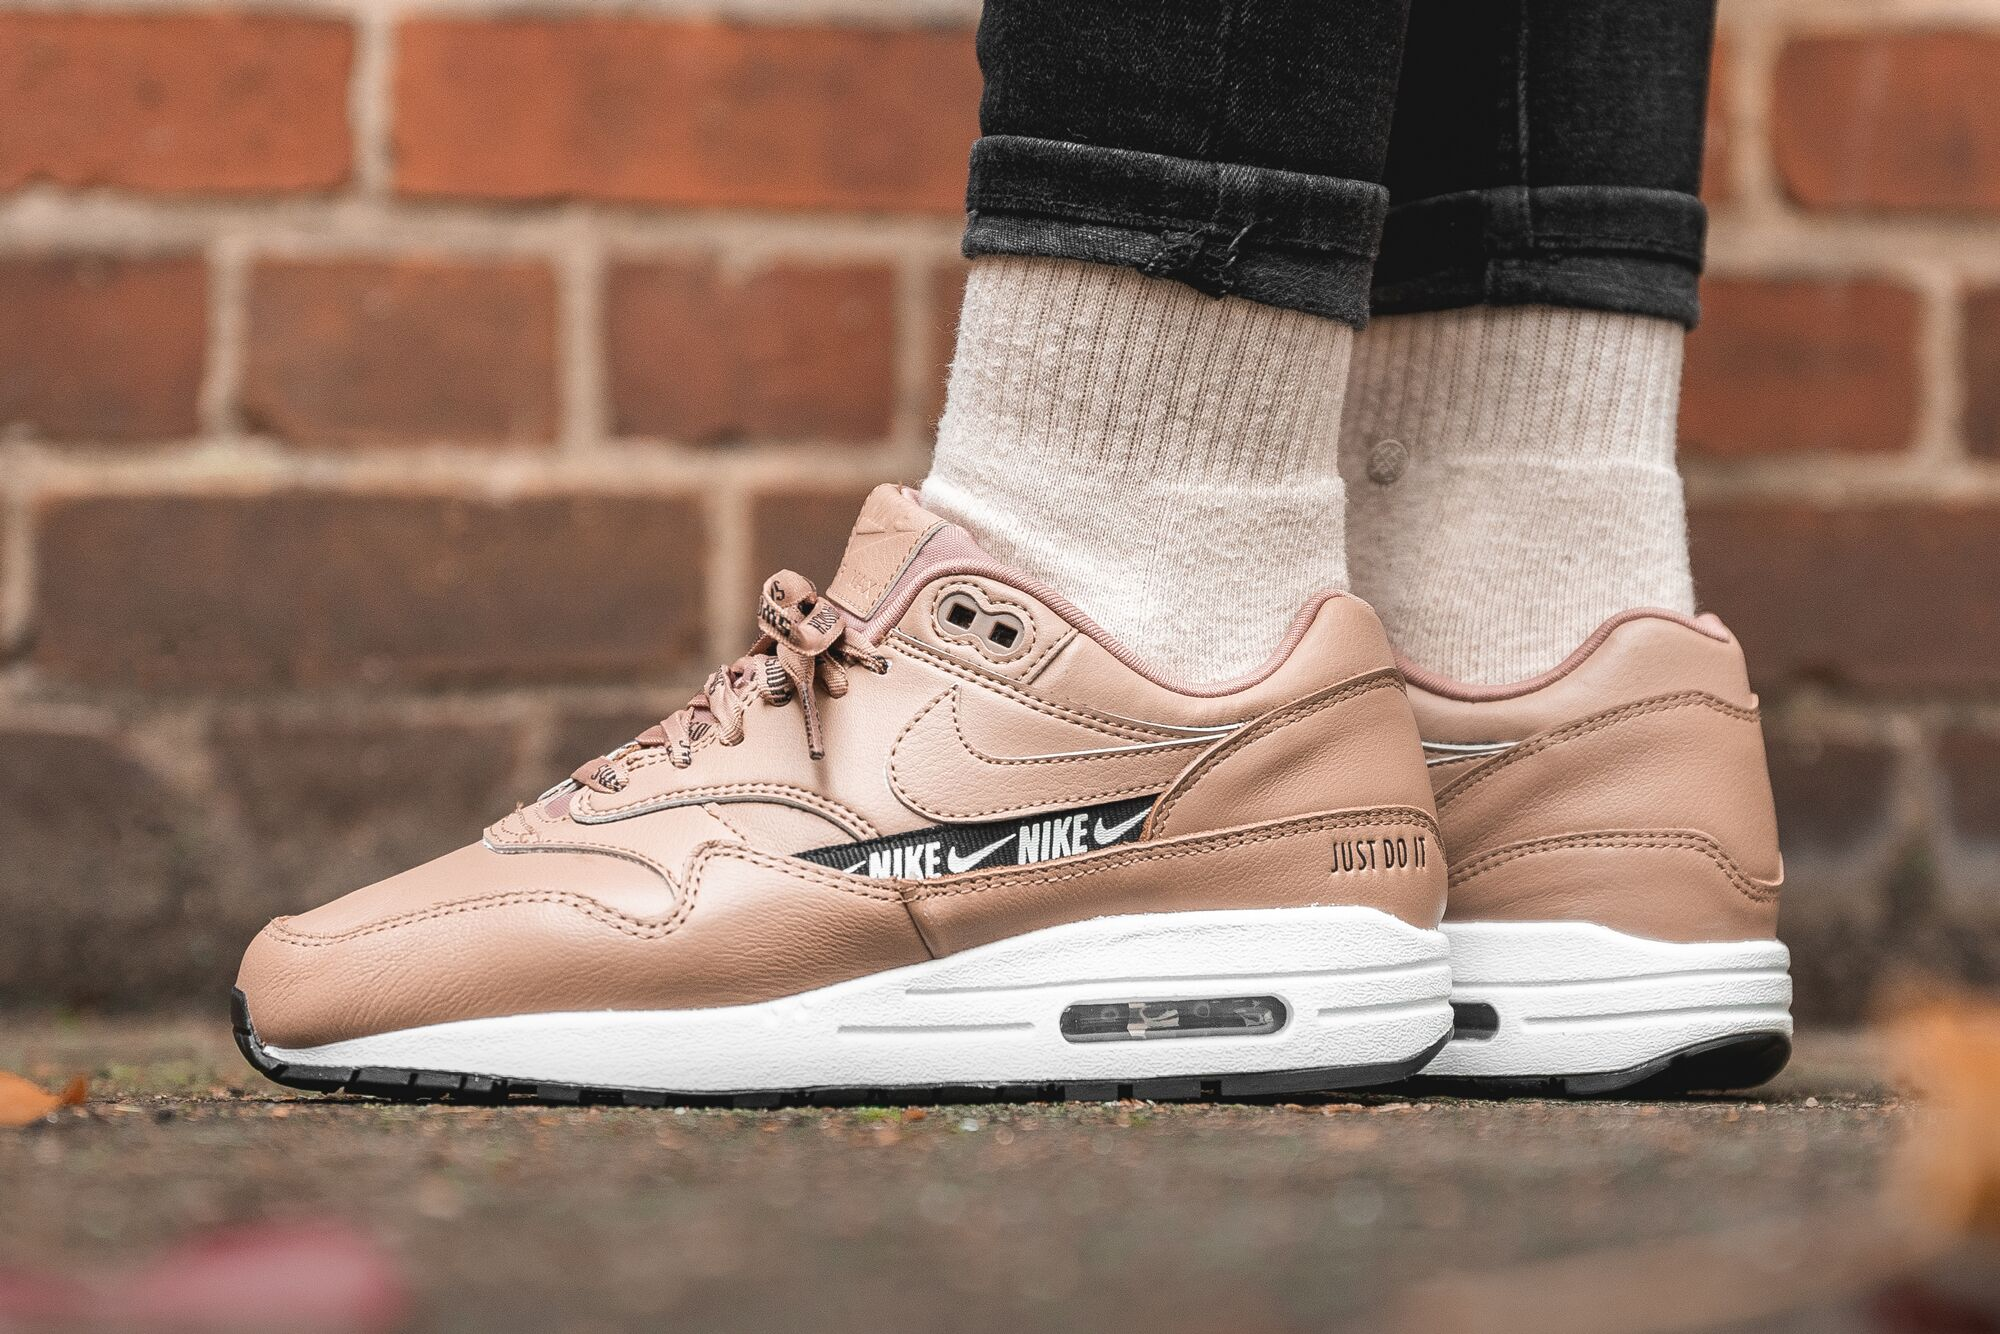 An On Feet Look At The Nike WMNS Air Max 1 SE Desert Dust